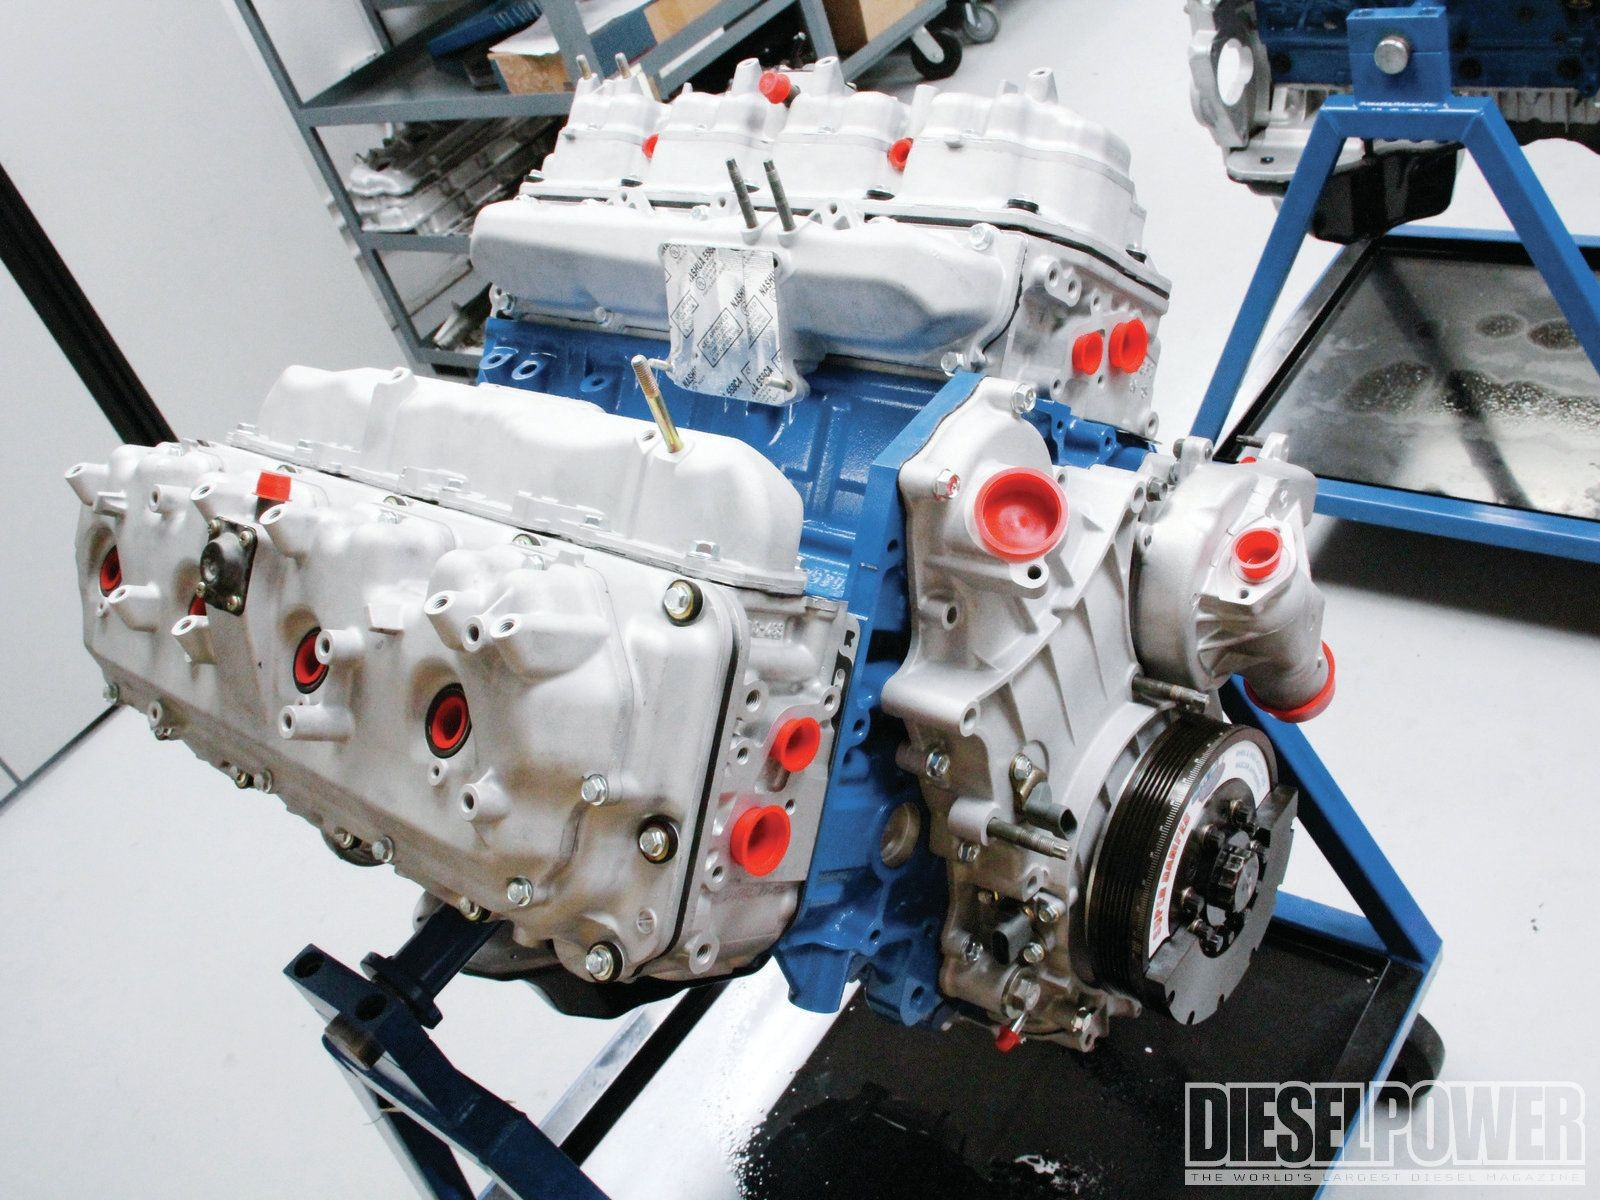 Lb7 Engine Diagram Wiring Library Fuel Filter Housing Duramax Diesel Million Mile Rebuild Image Gallery Of